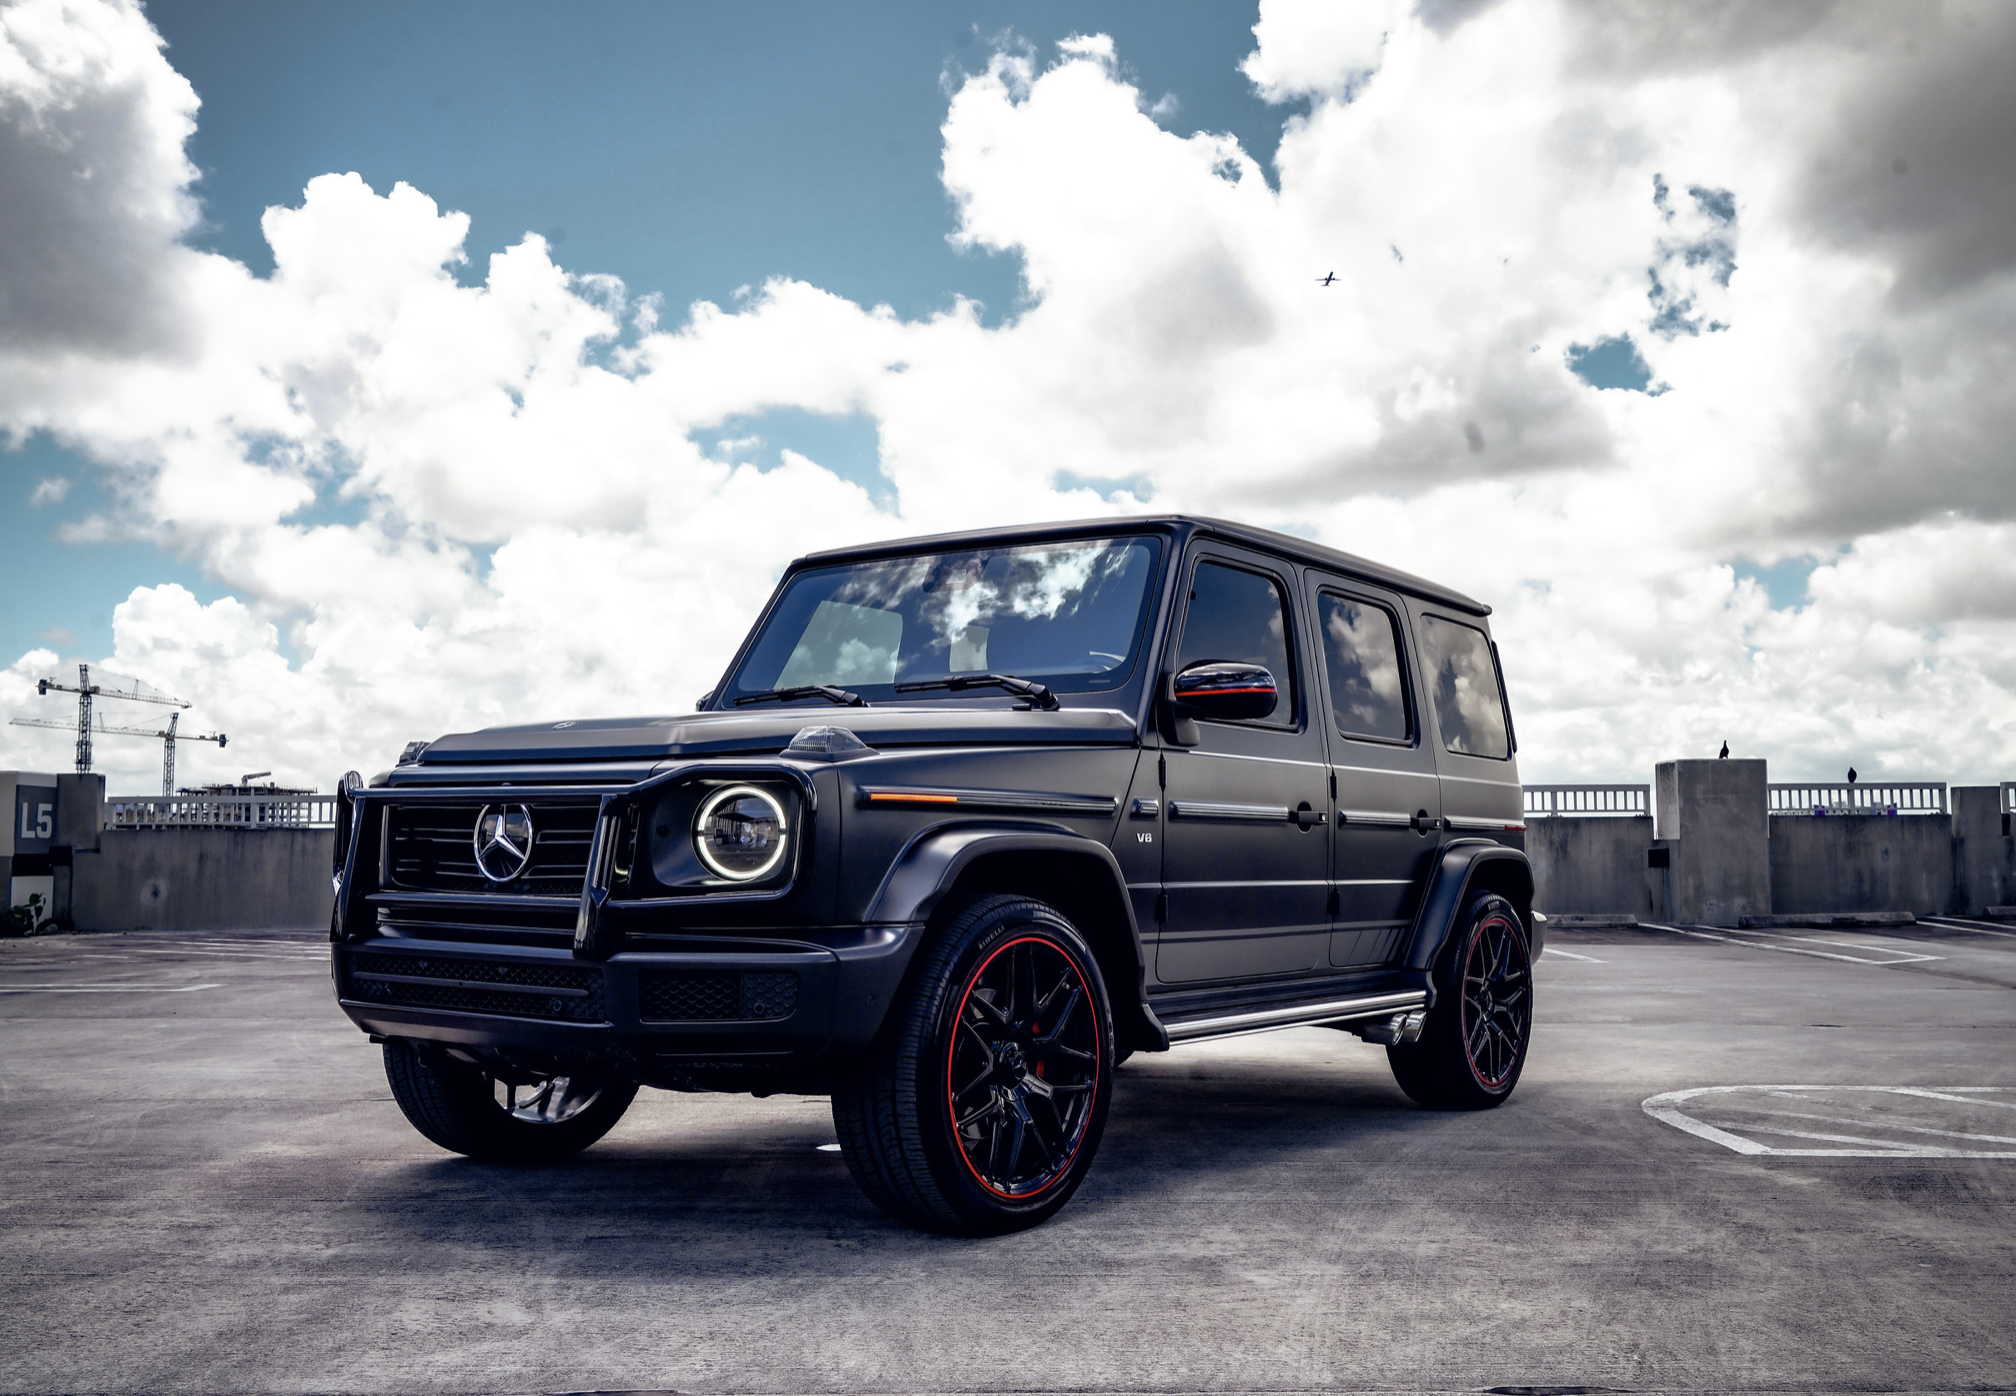 Image #0 of our  Mercedes AMG G63 Matt Black    In Miami Fort Lauderdale Palm Beach South Florida